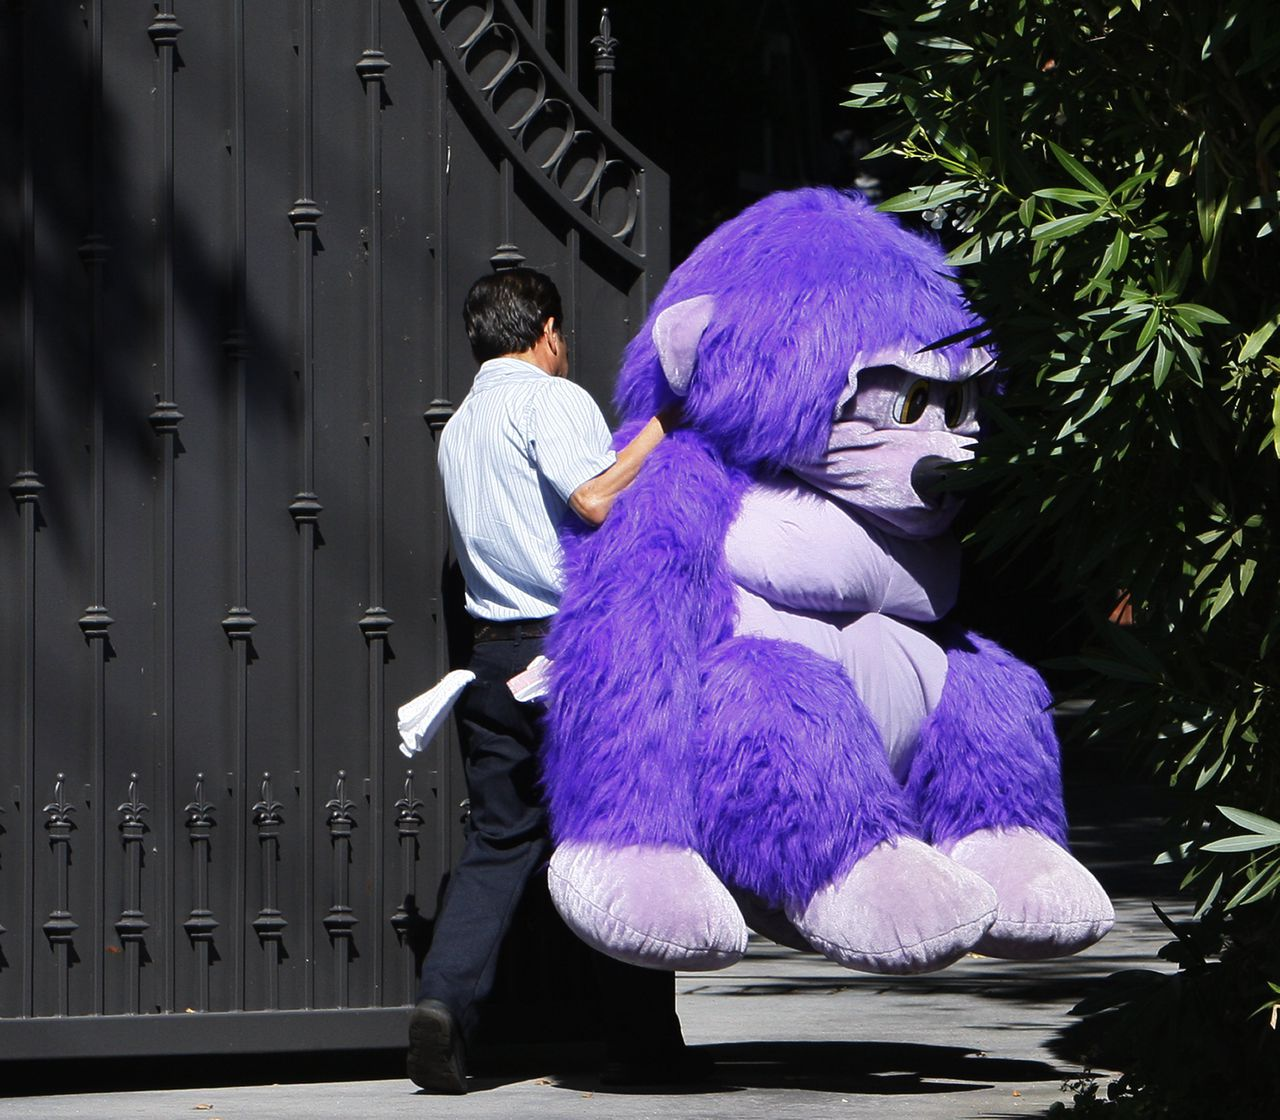 (AP/ Charles Dharapak) A maintenance worker carries a large stuffed purple monkey left for pop star Michael Jackson at the makeshift memorial into the Jackson family residence in Encino, Calif., Tuesday, June 30, 2009. (AP Photo/Charles Dharapak)